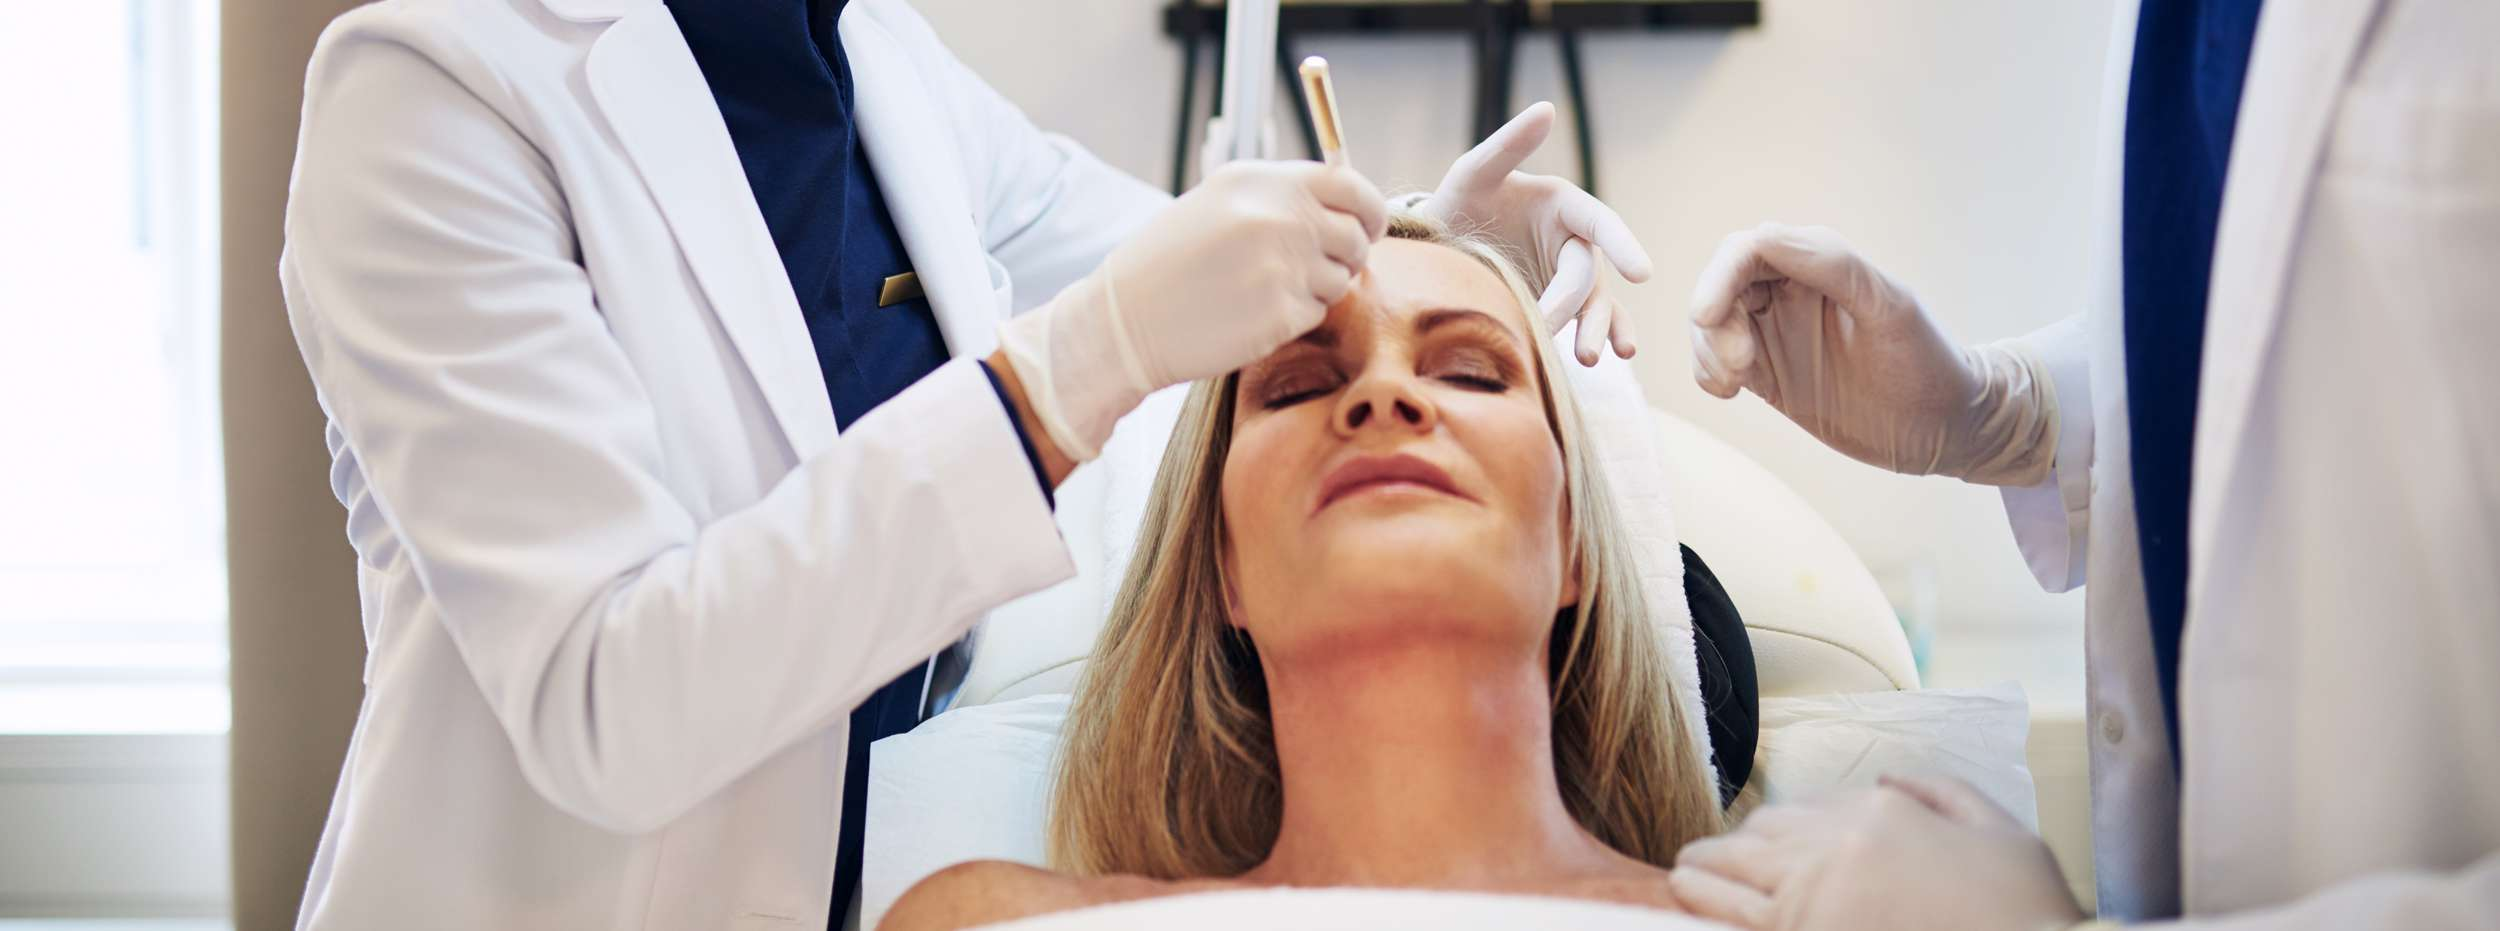 woman lying on clinic table before cosmetic surgery